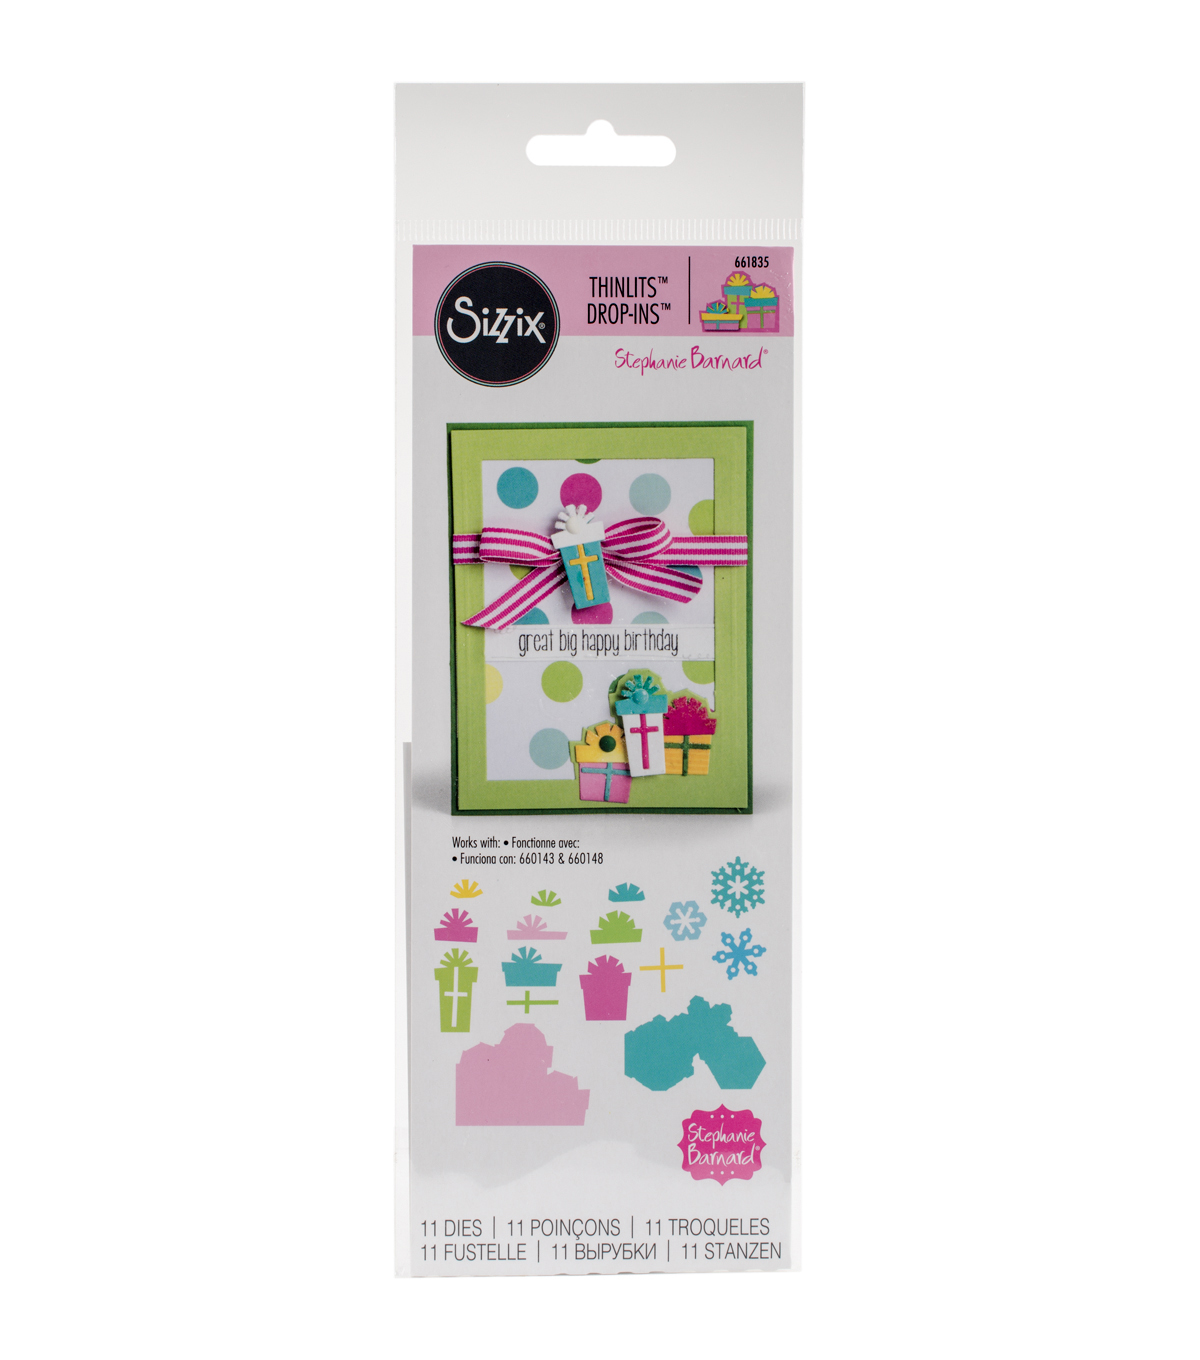 Sizzix® Thinlits™ 11 Pack Dies-Gifts Drop-Ins